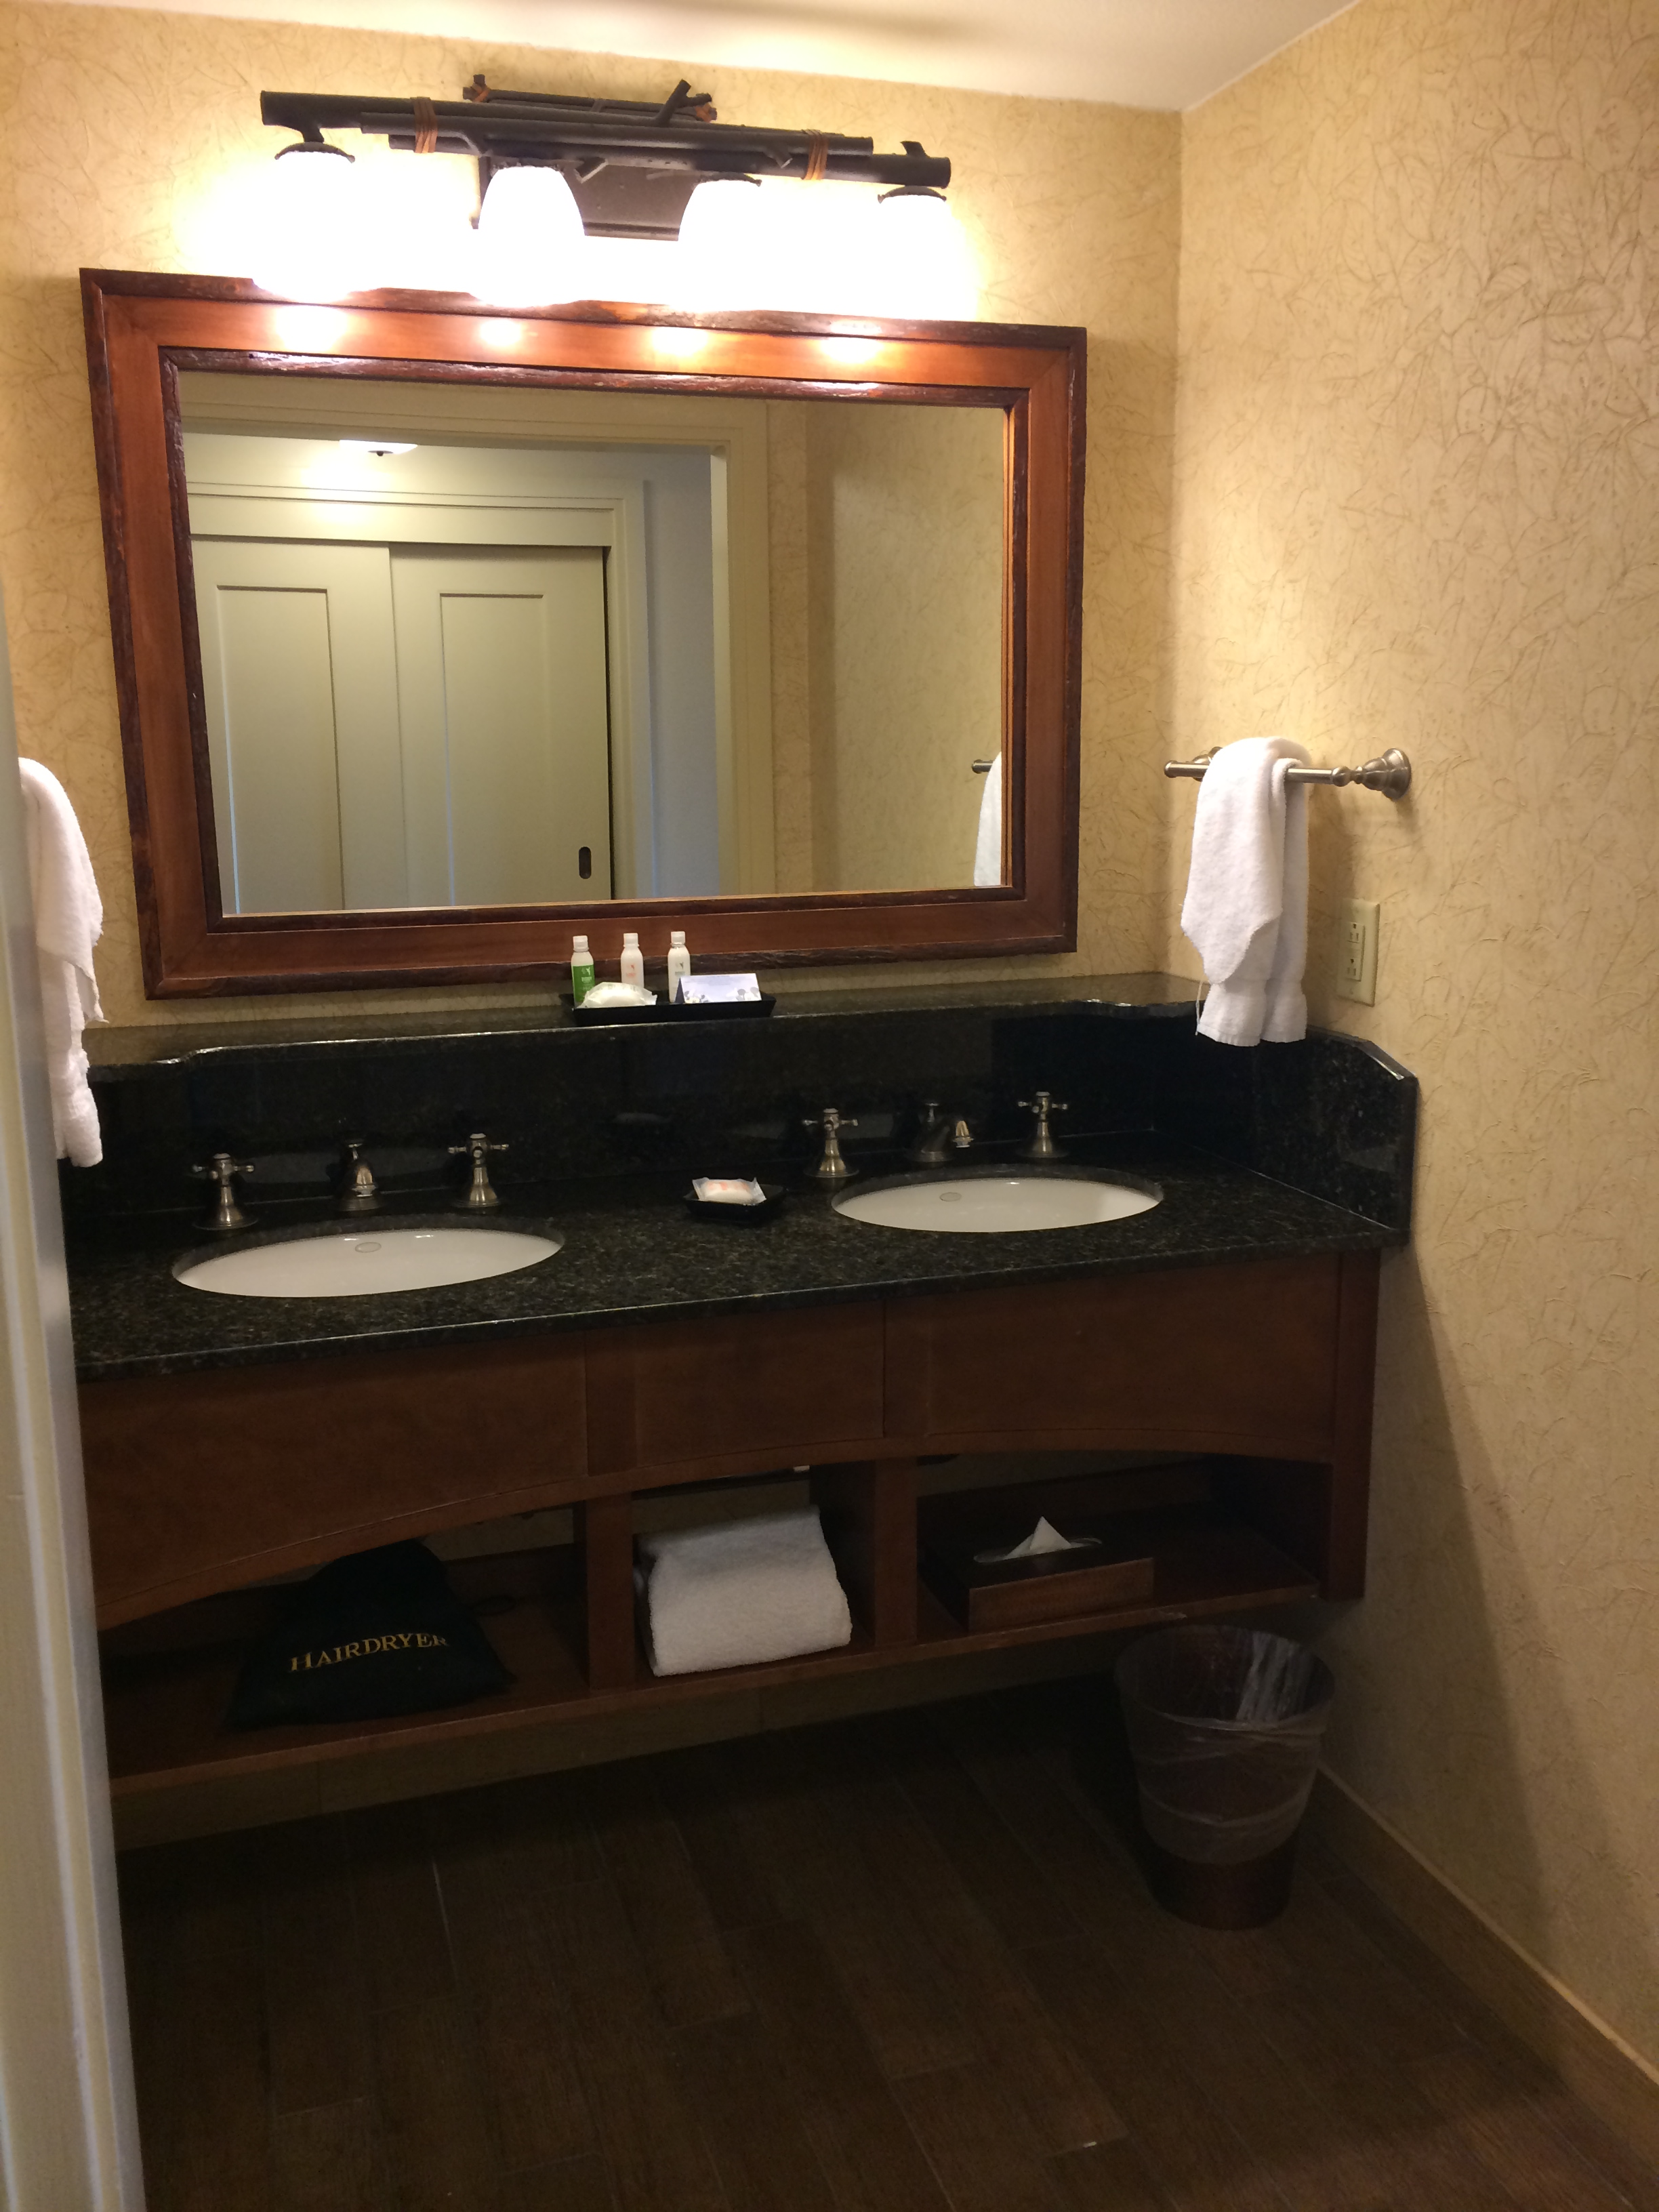 Room Photos From Our Recent Stay At Disney S Wilderness